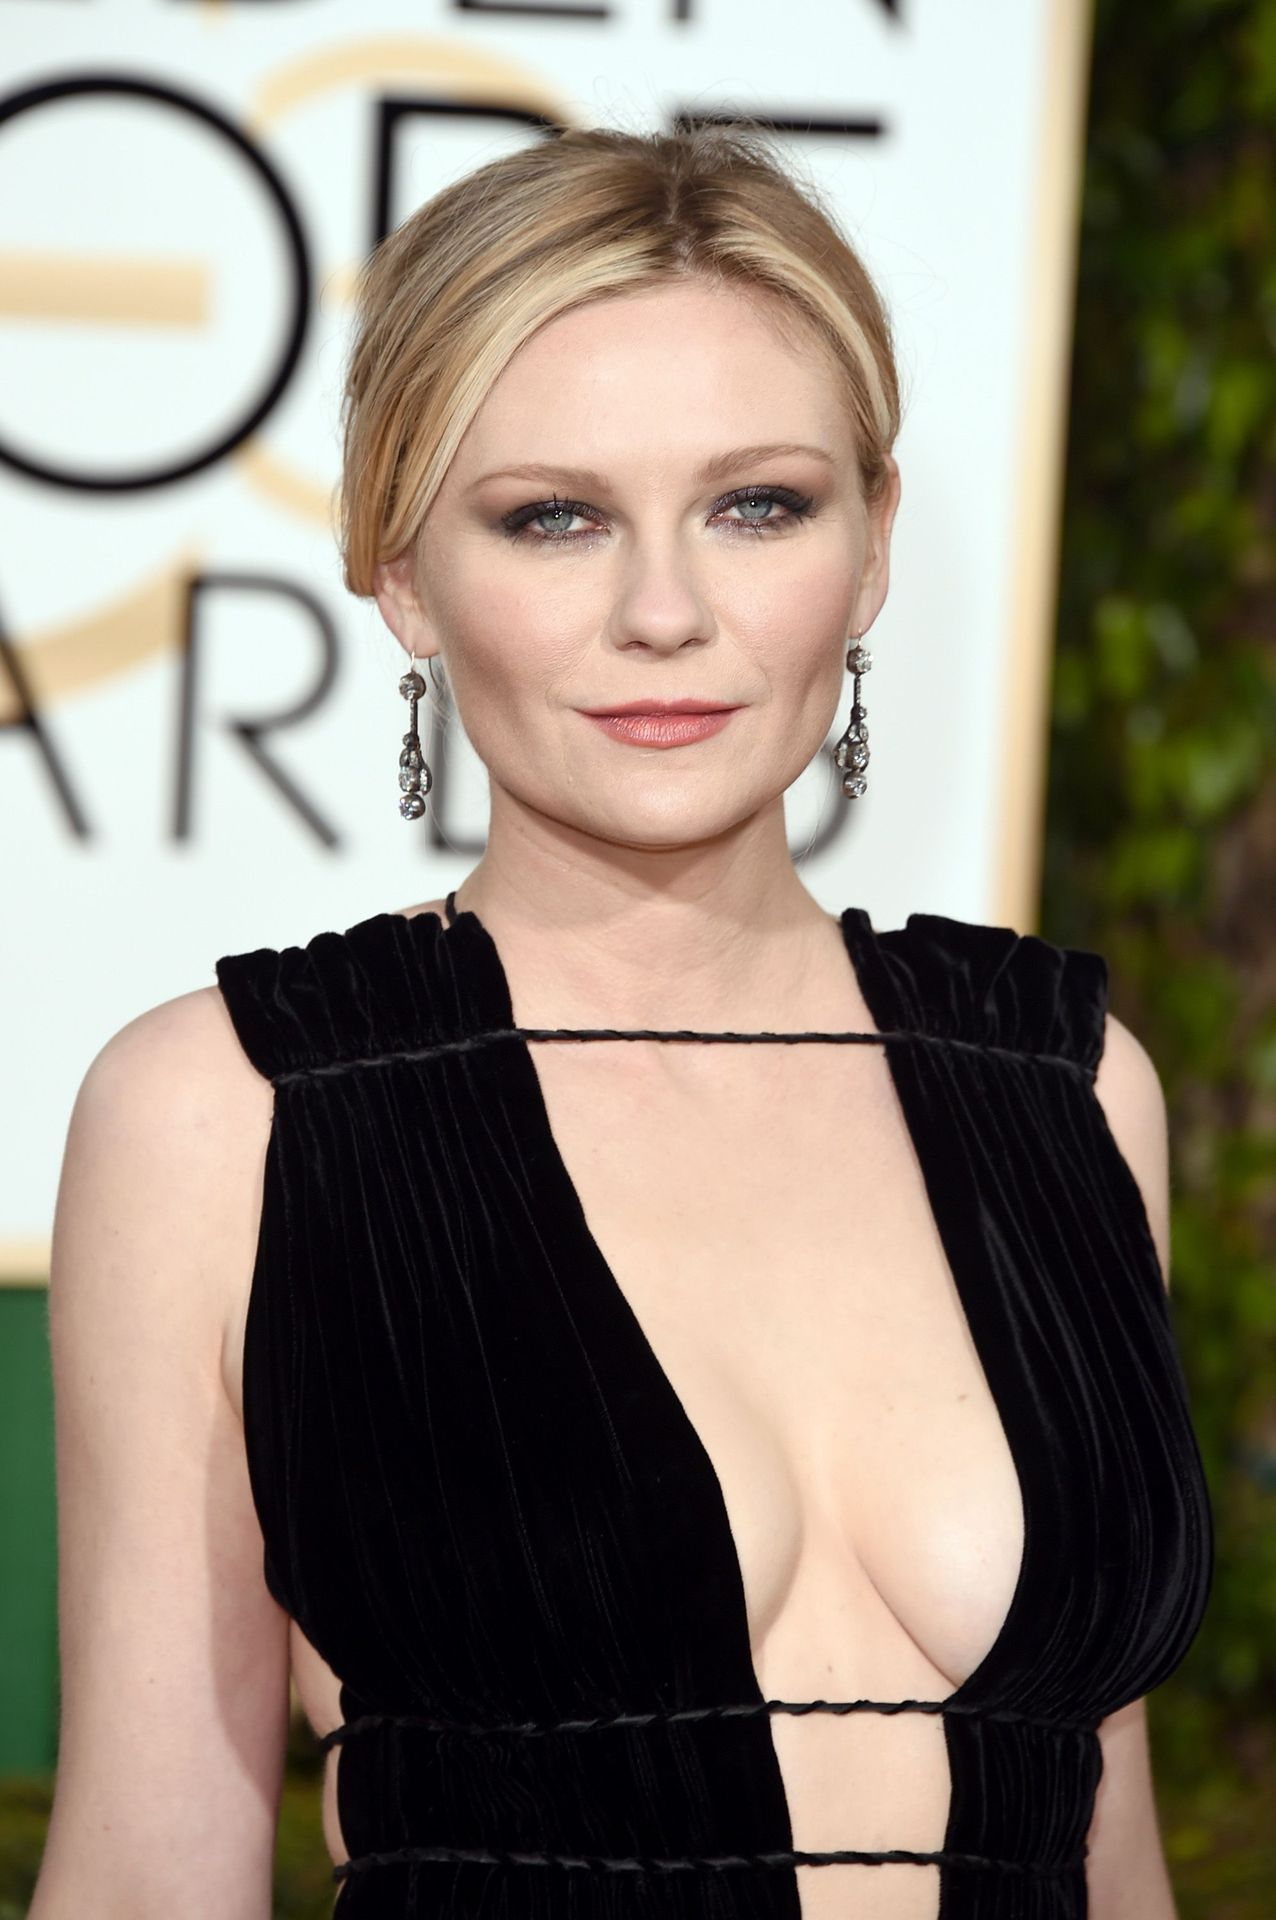 photo Kirsten dunst old lady tits